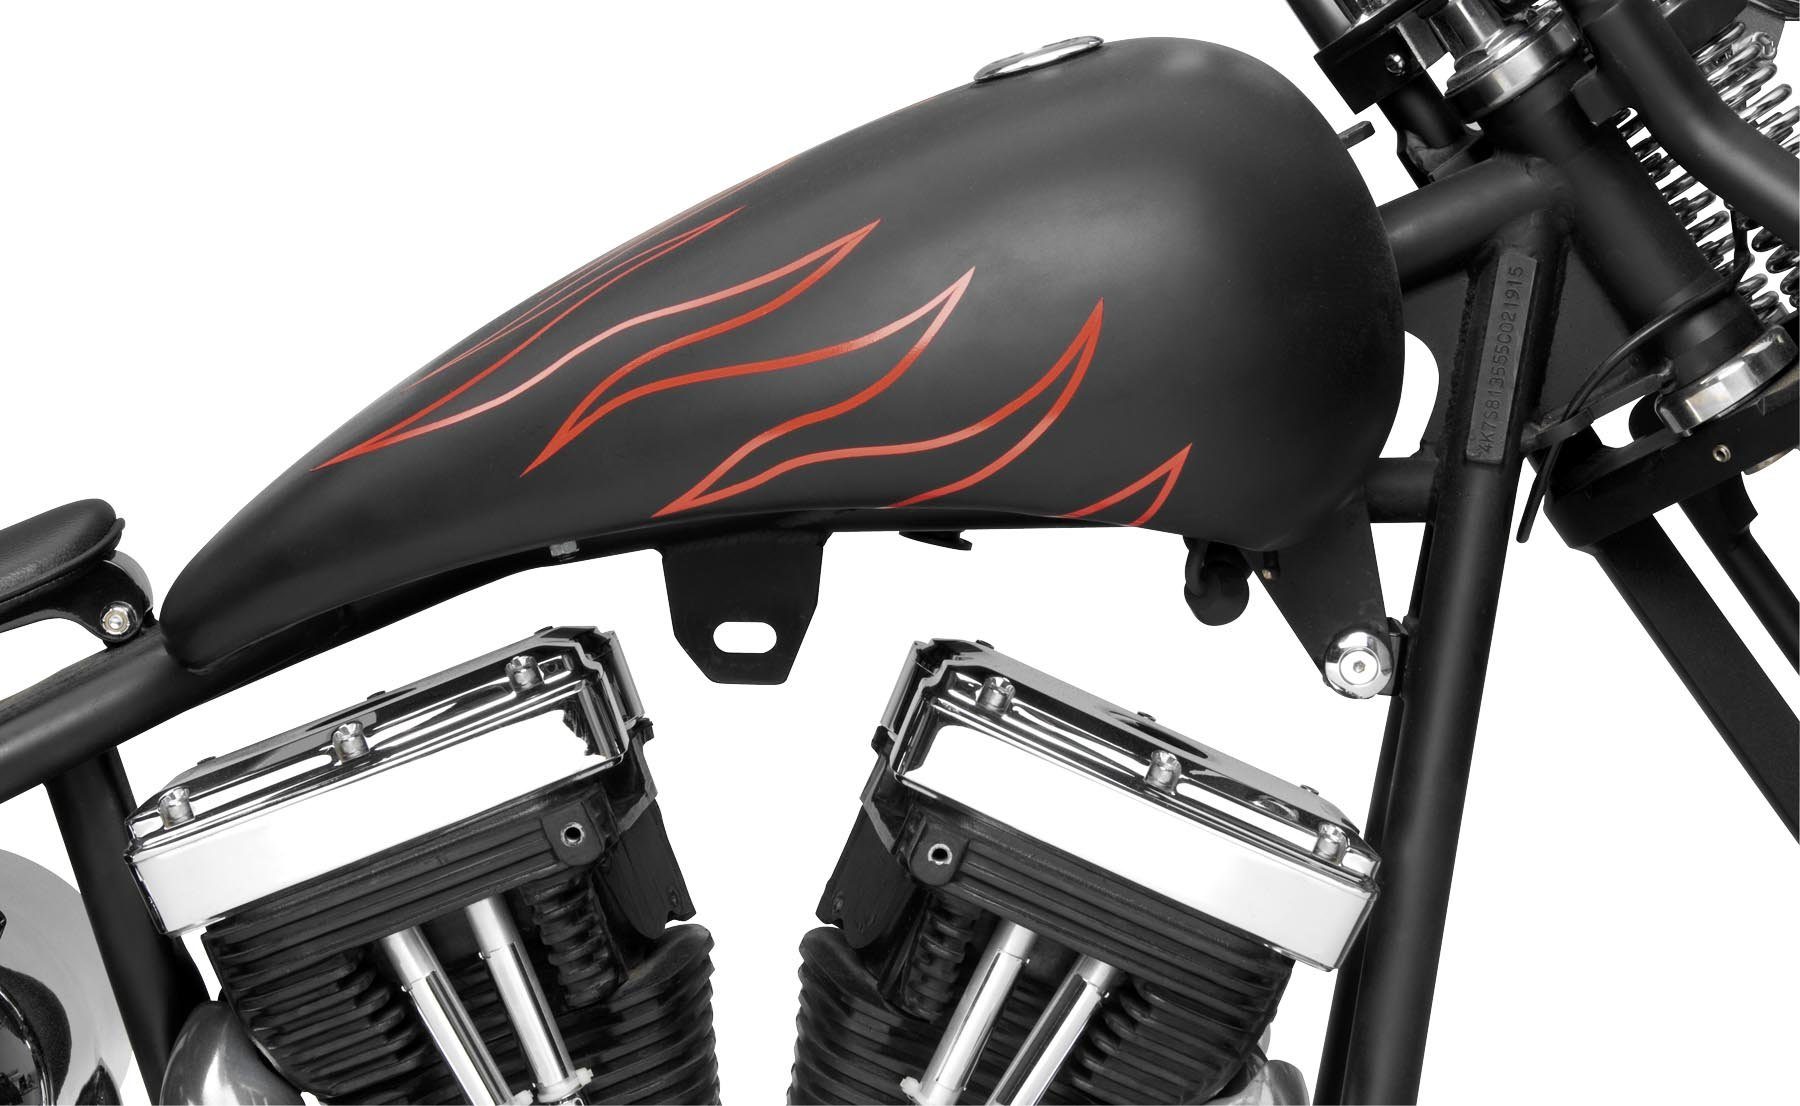 Bikers Choice Stretched Gas Tank for Screw Cap 011675 by Biker's Choice (Image #1)